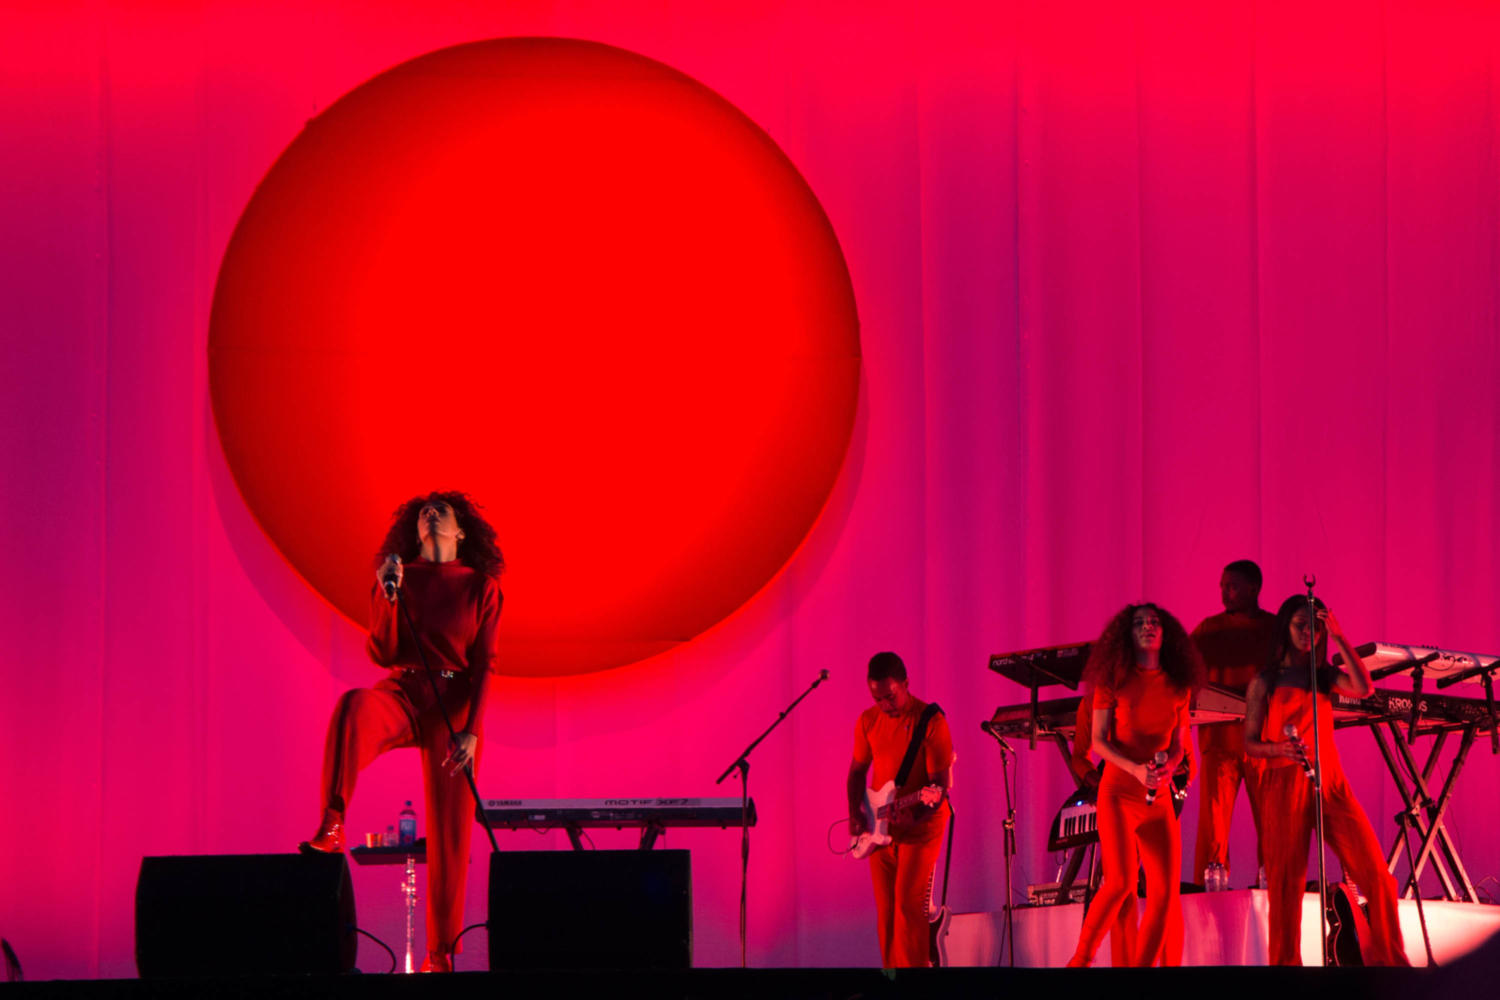 Solange to play Grace Jones' Meltdown Festival